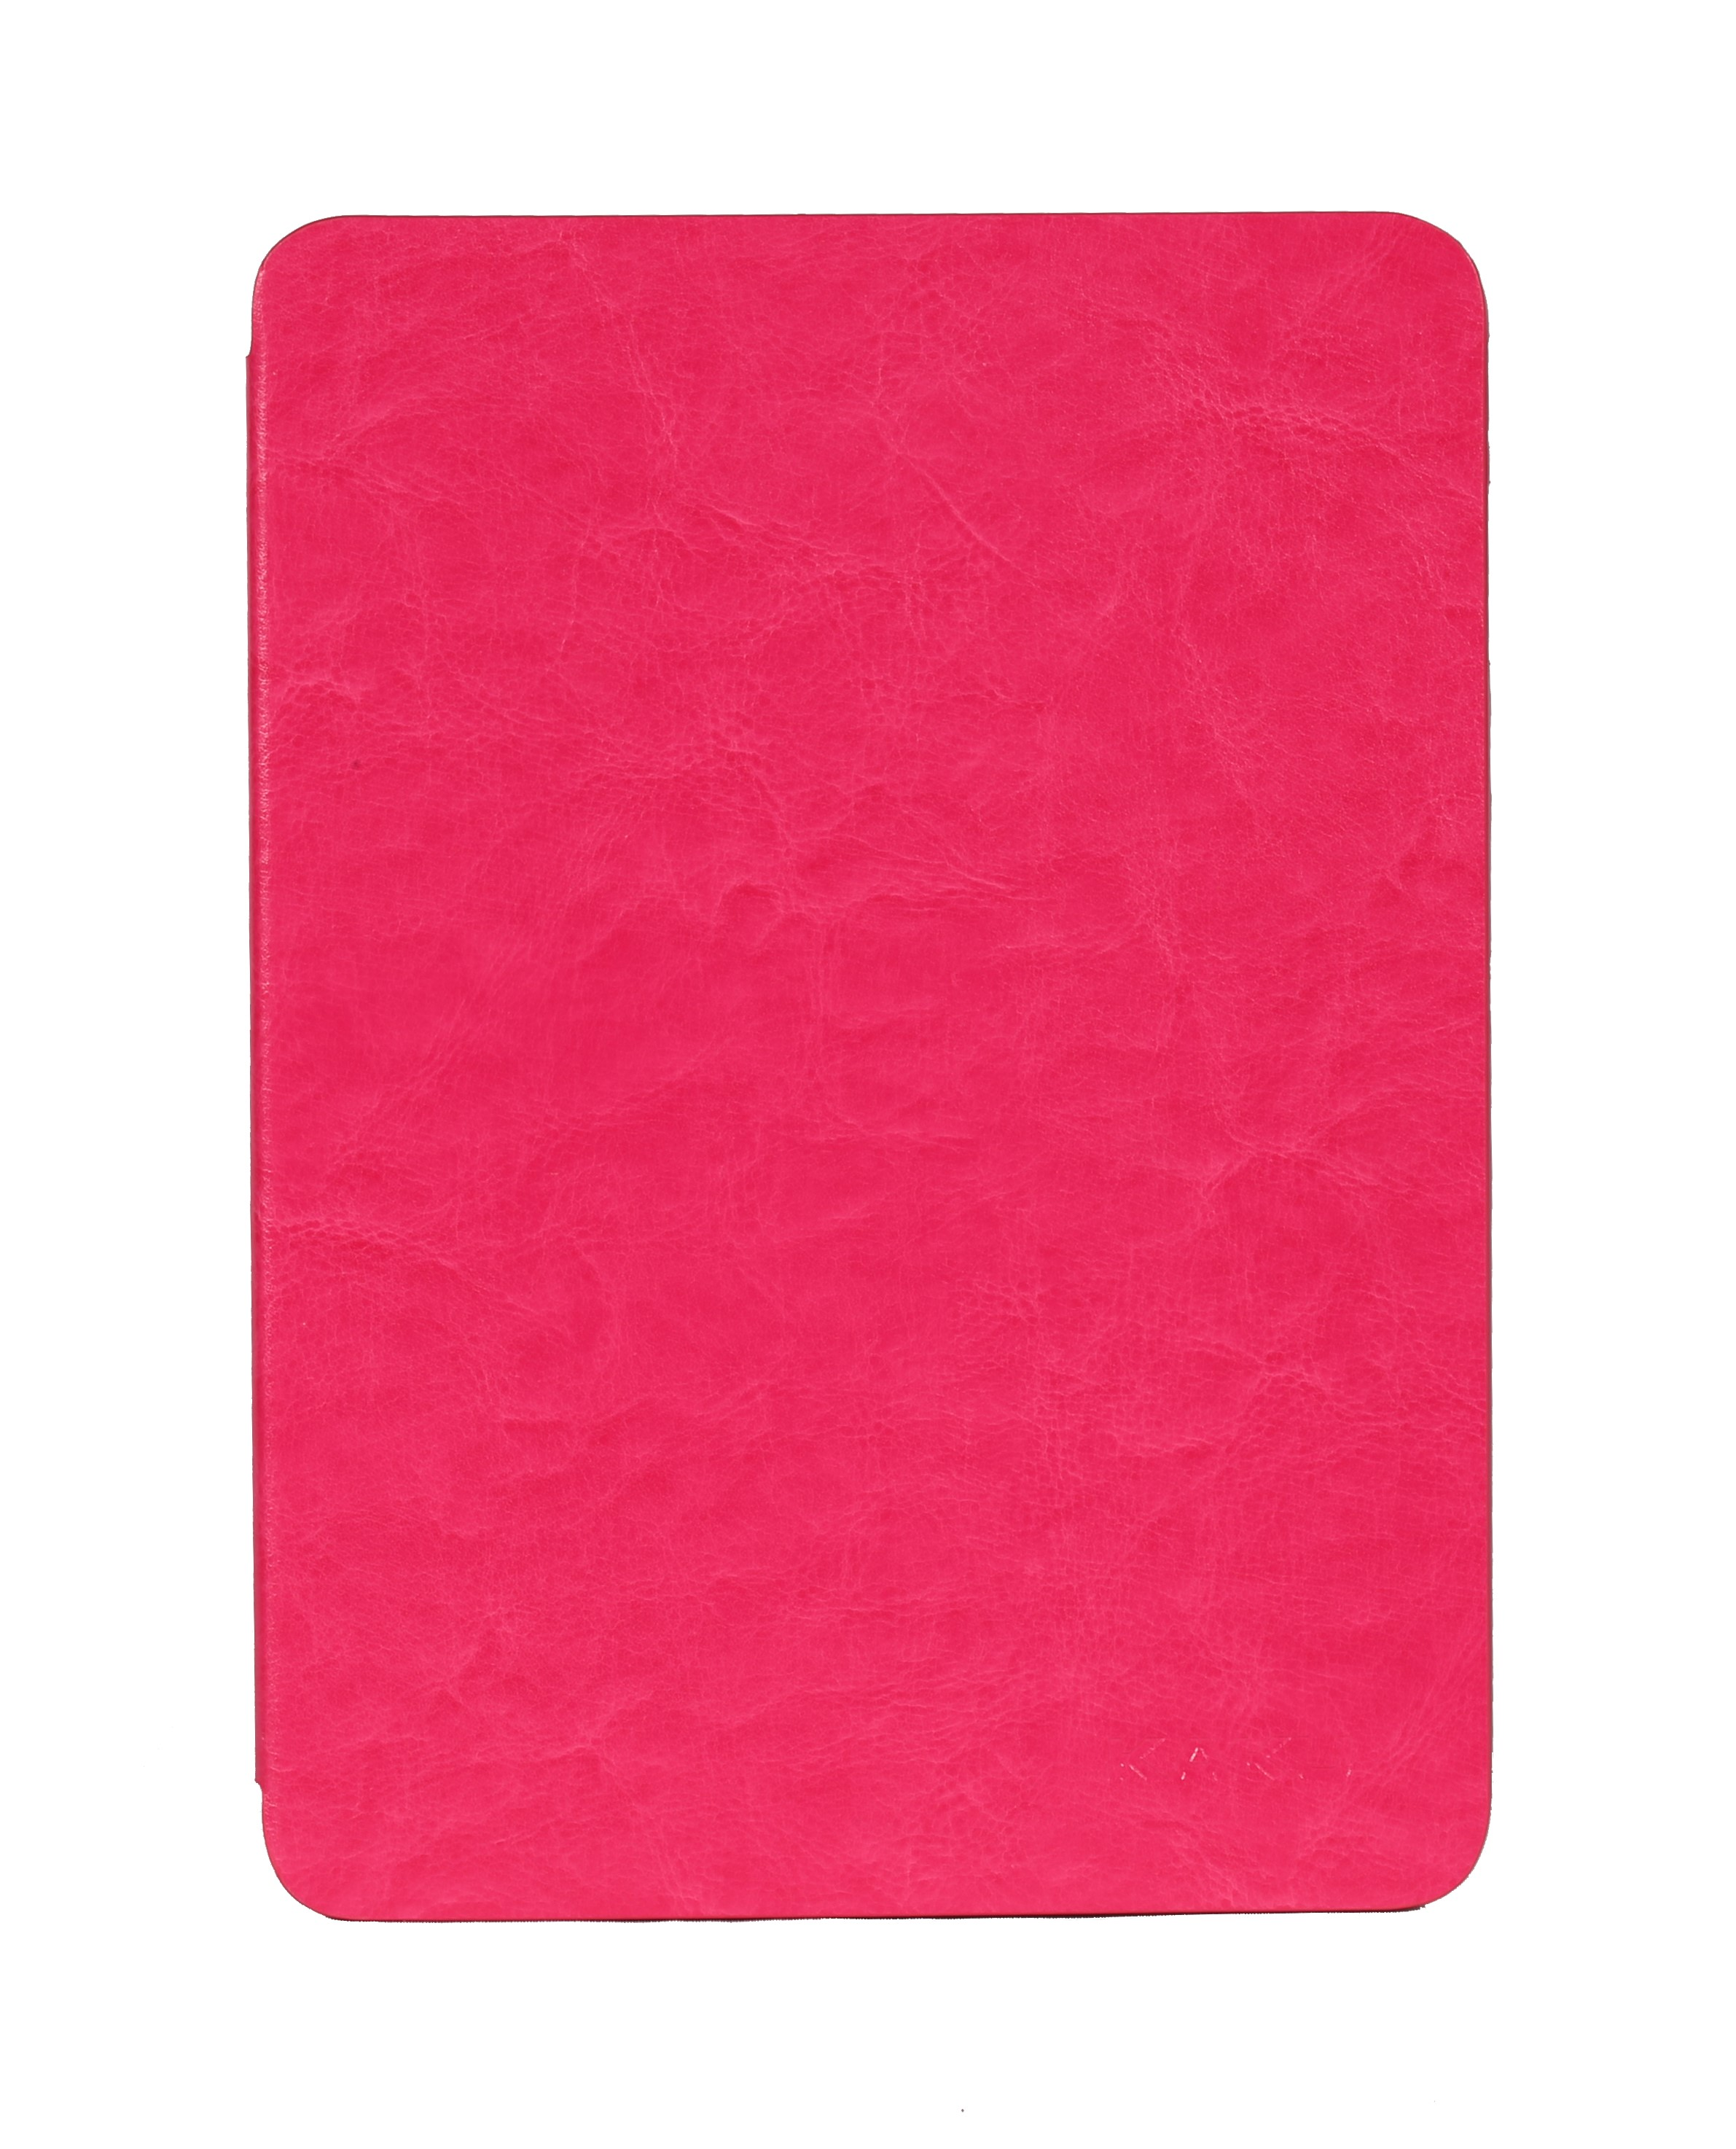 "KAKU FLIP COVER FOR SAMSUNG TAB 4 (10.1"") / T530 (PINK)"